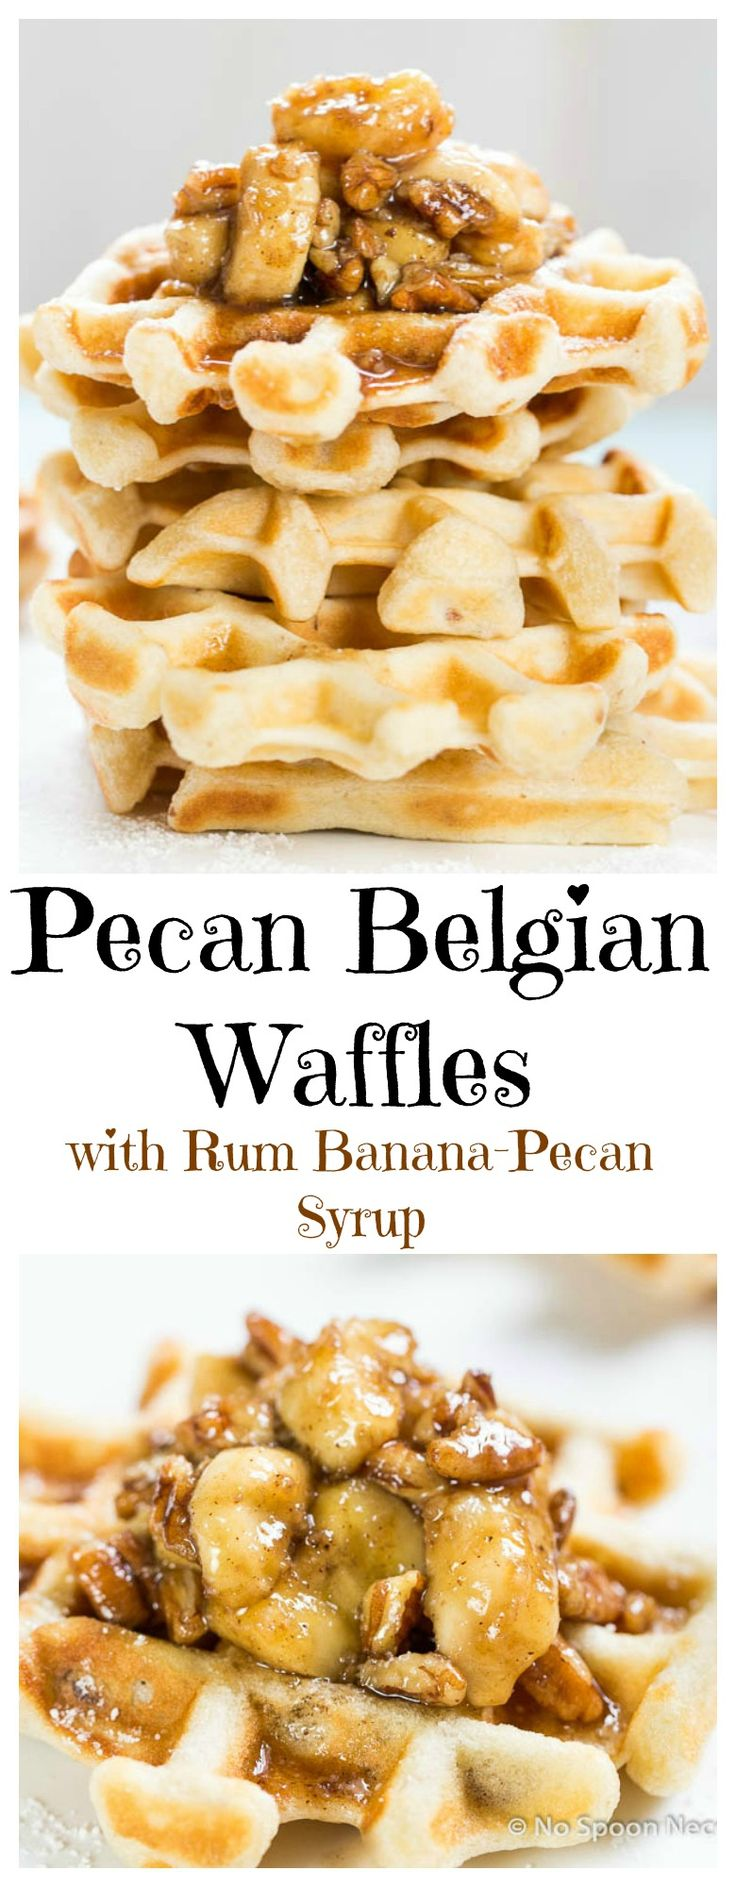 Pecan Belgian Waffles with Rum Caramelized Banana-Pecan Syrup.  Breakfast of Champions!